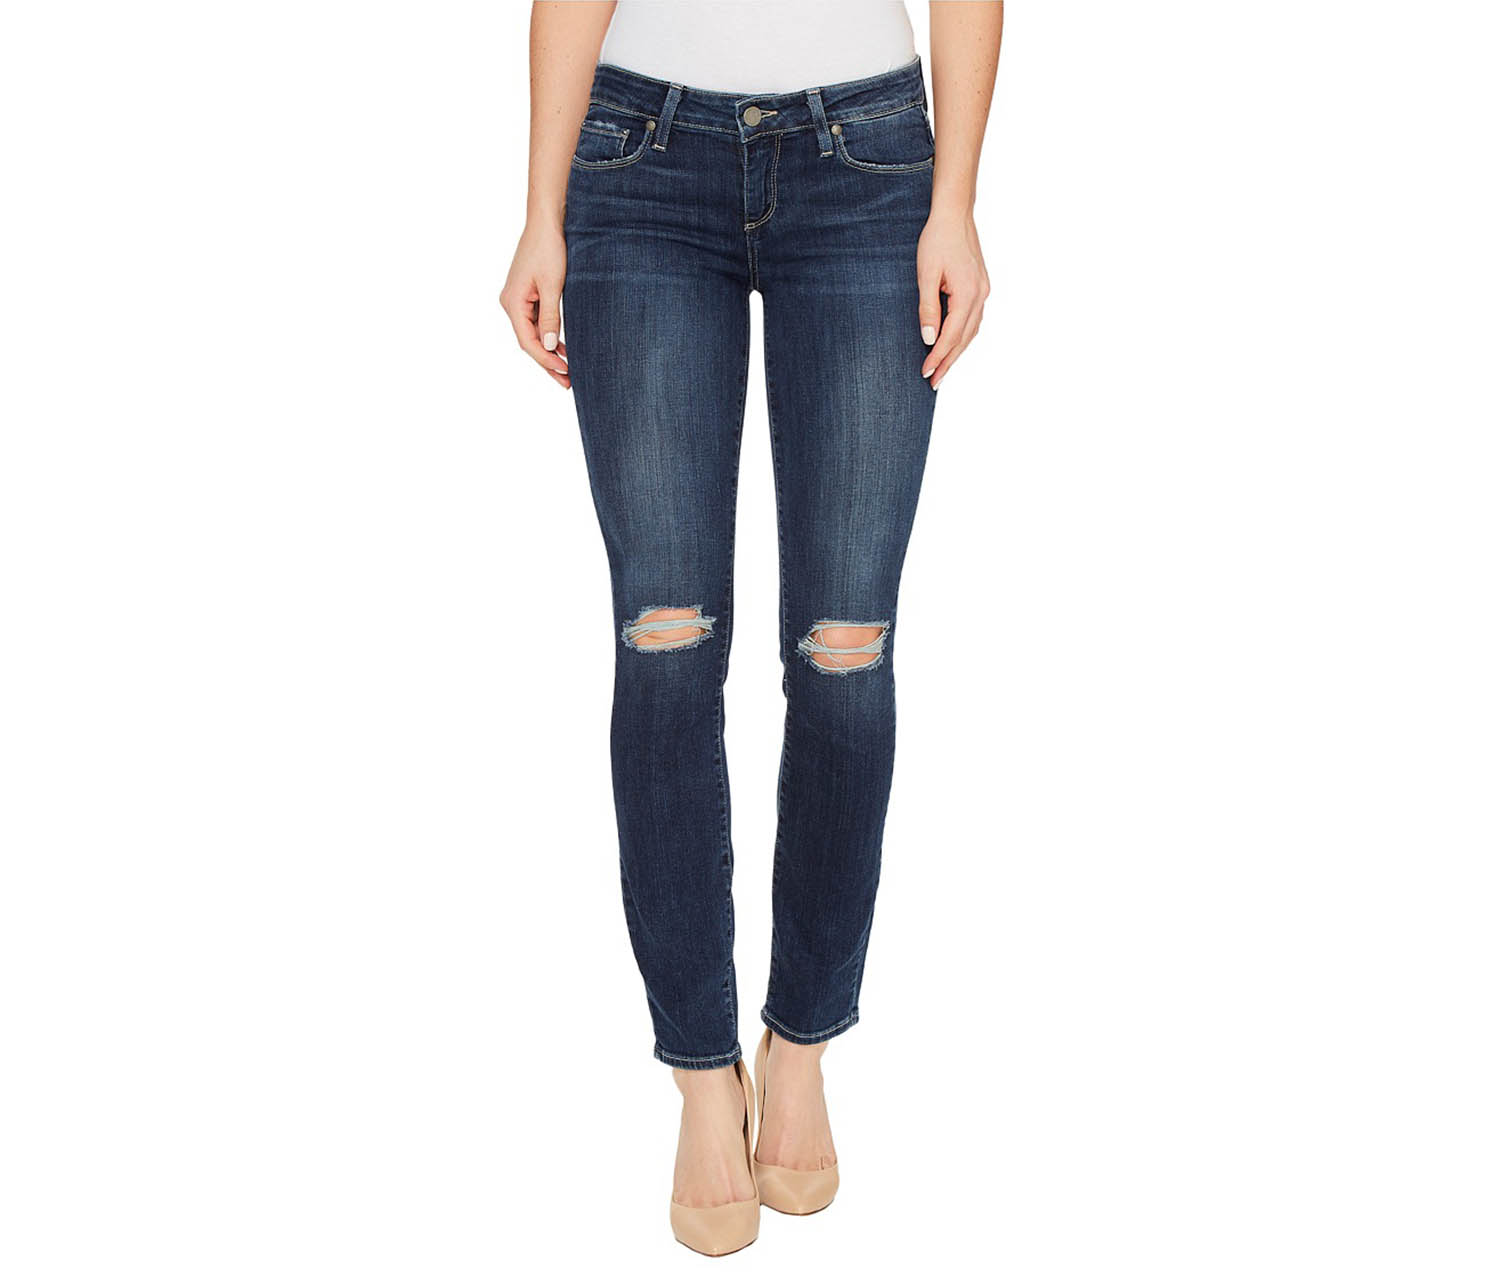 Paige Women's Ankle Skinny Jeans, Navy